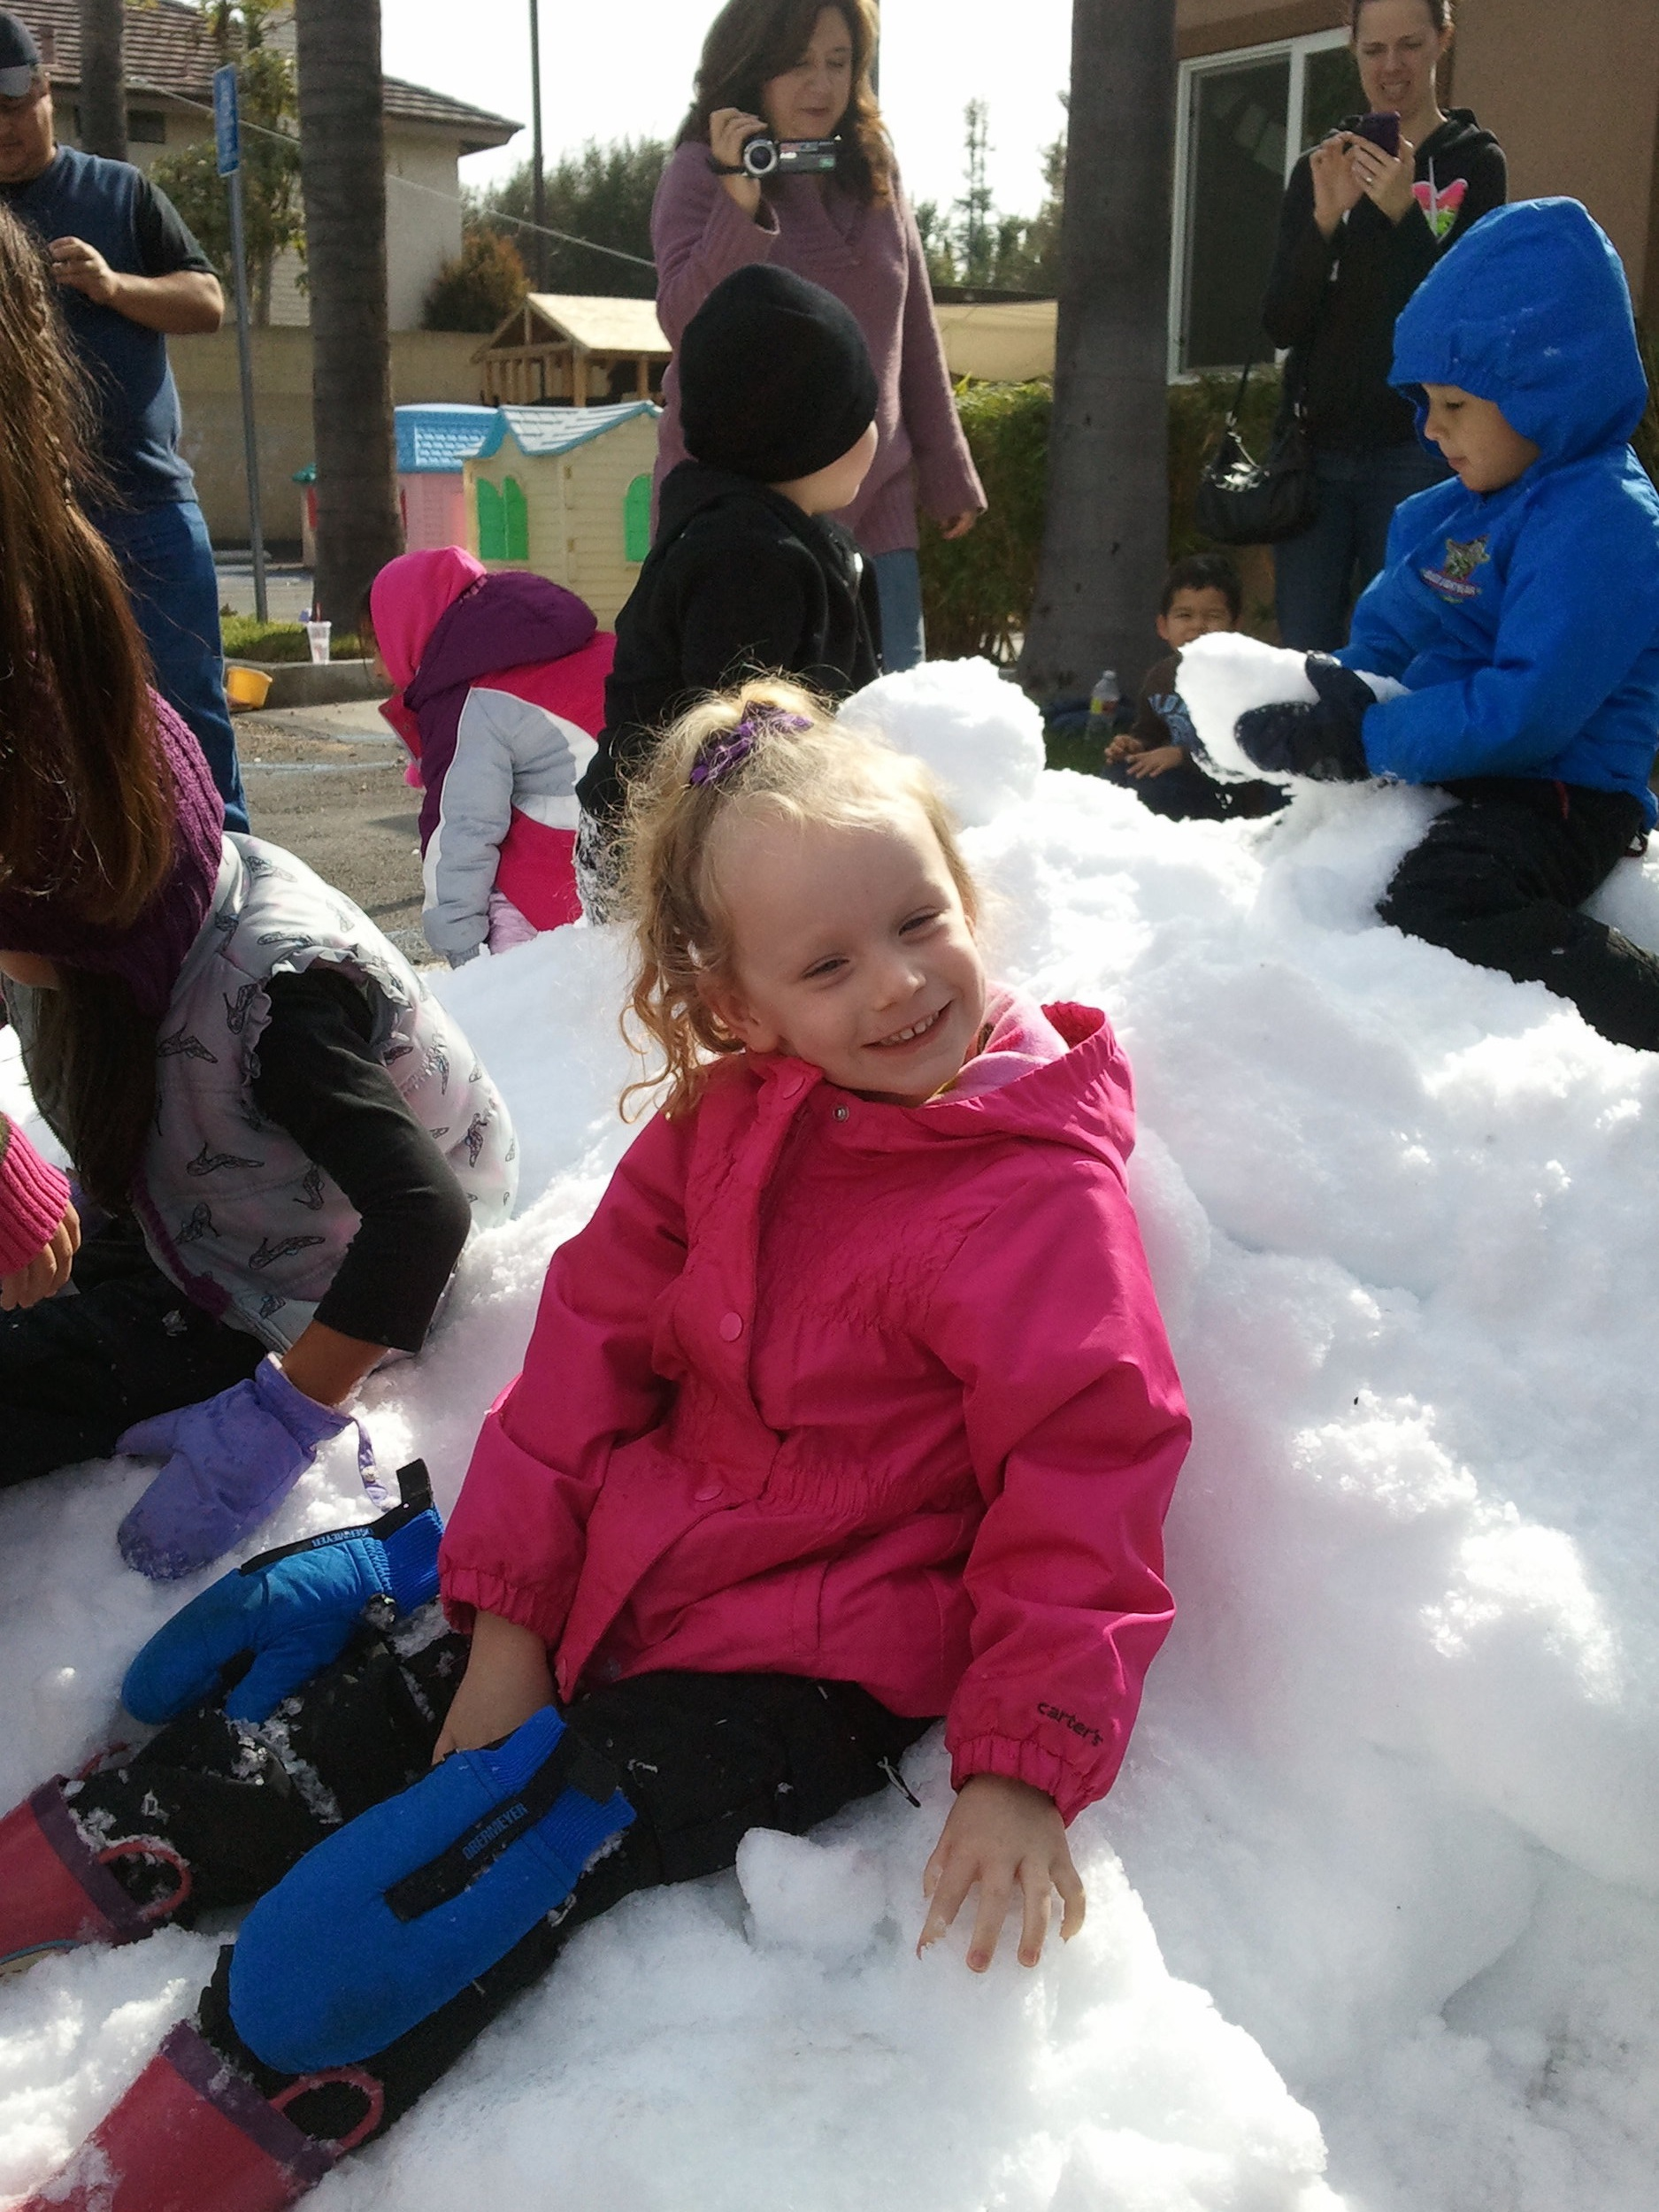 We also had our annual fun snow day!! The children love it when the snow truck brings tons of that cold white fluffy stuff to the playground!